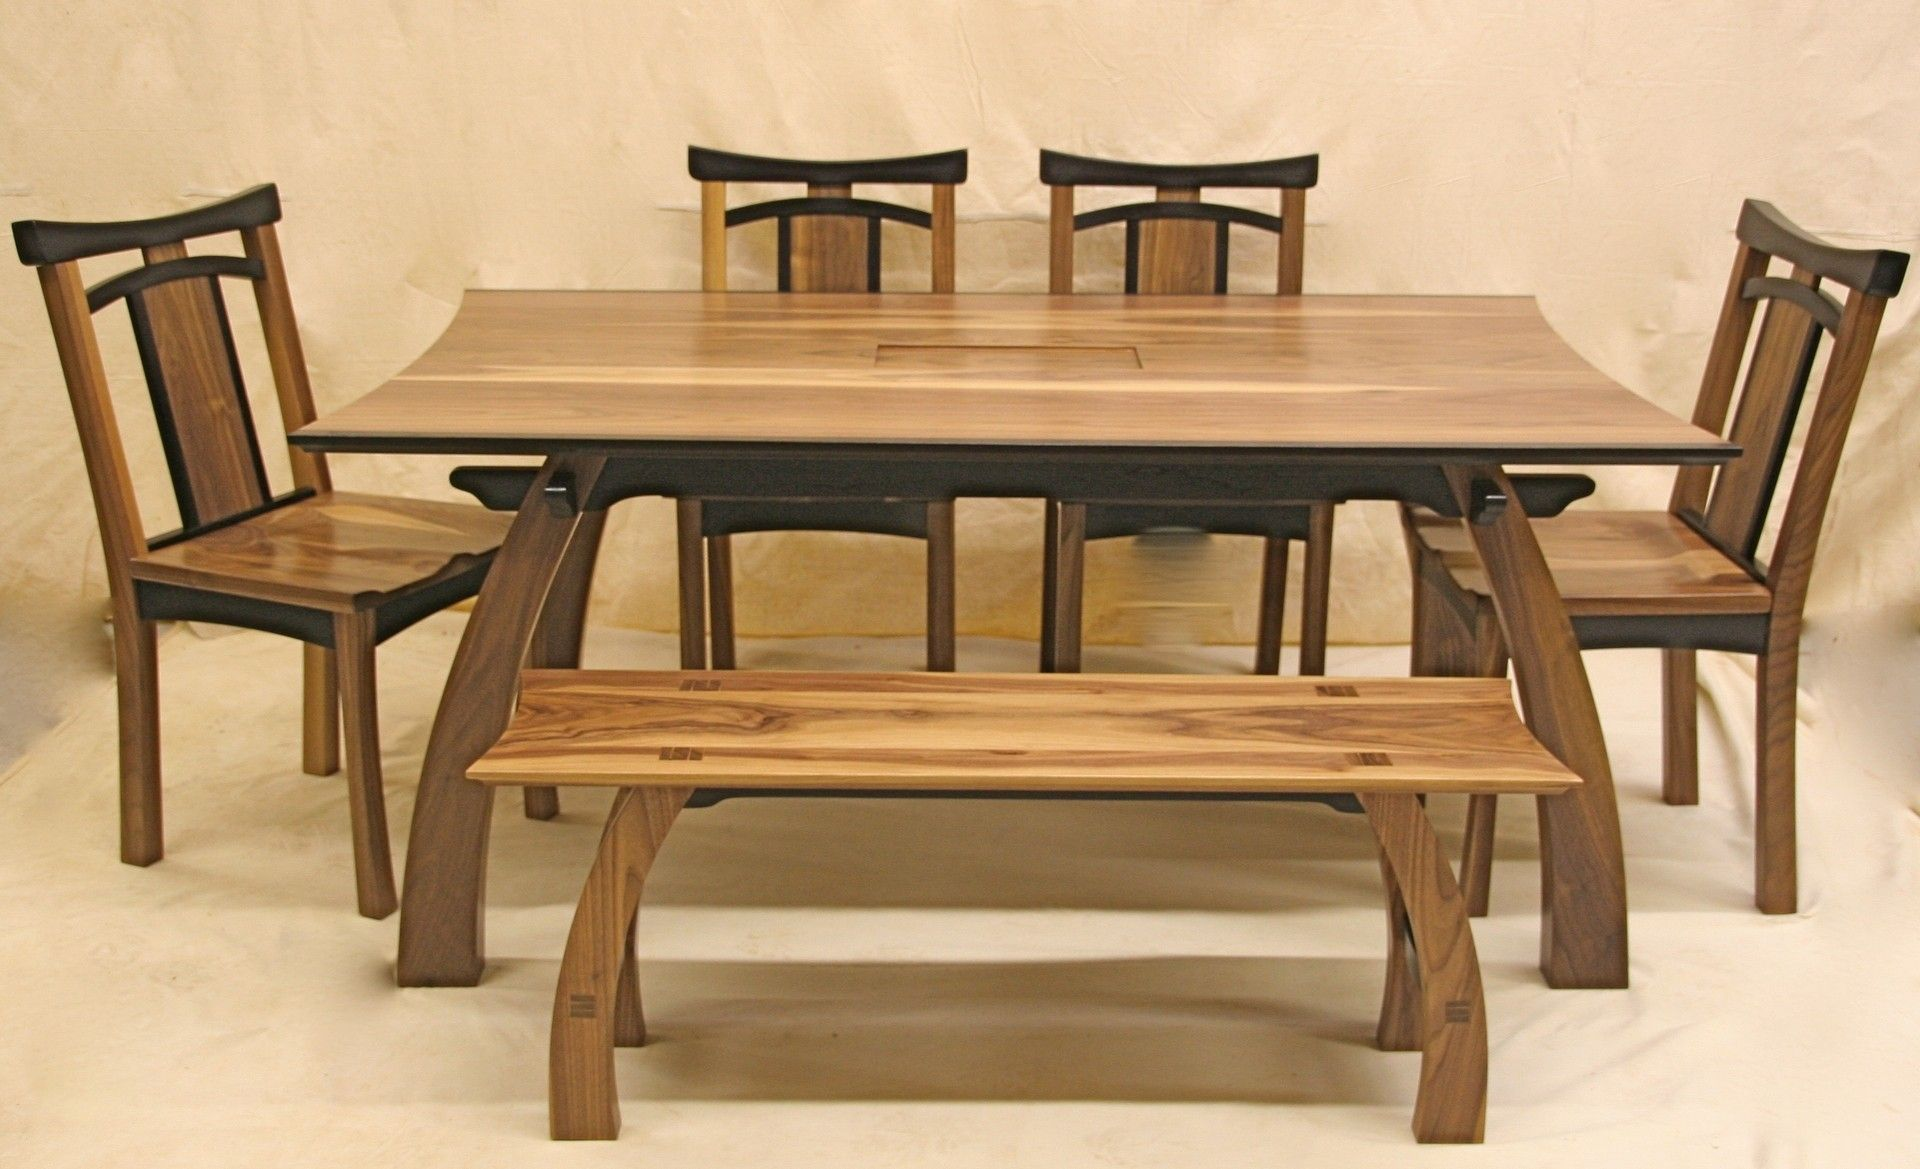 Rustic Japanese Low Teak Wood Dining Table Great Room Design Inspirations  With Furniture Classy Rectangular Wooden